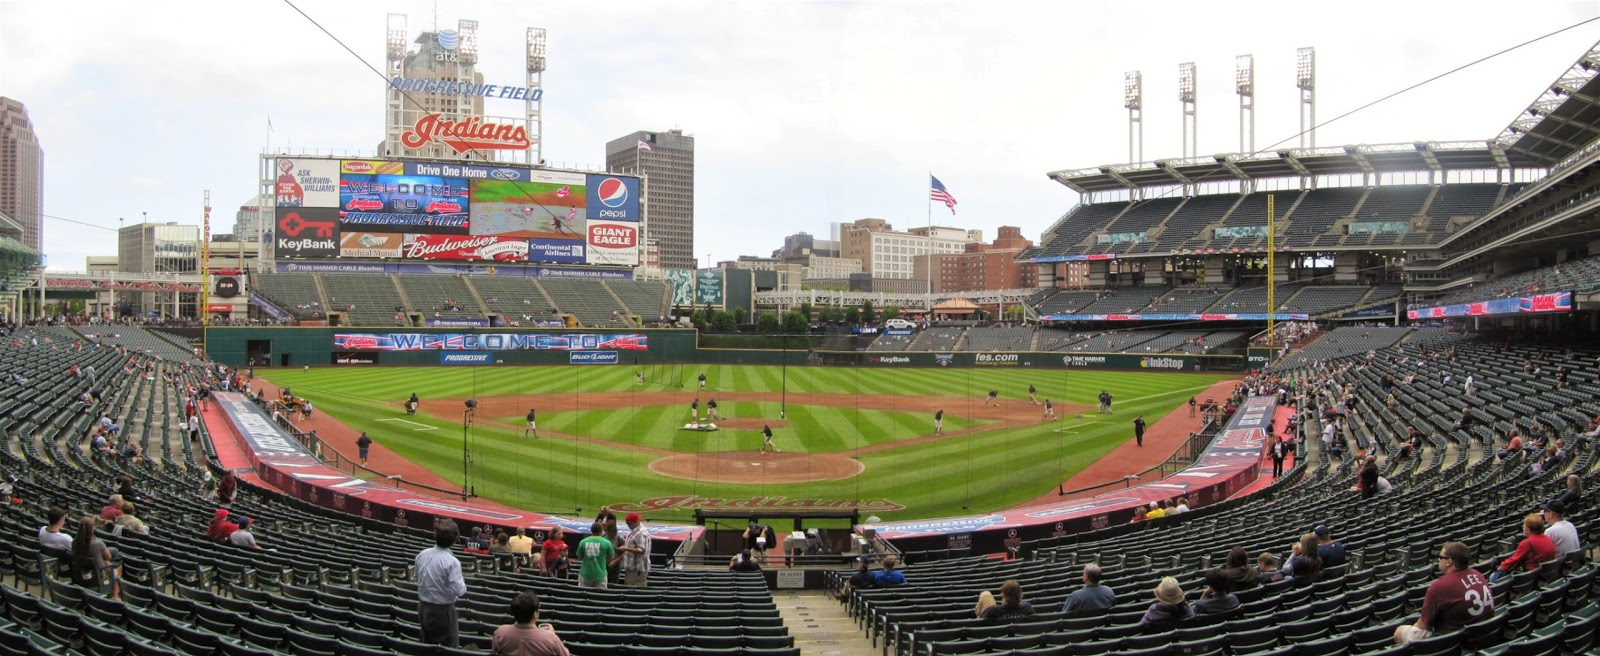 Progressive Field Luxury Suites For Sale, Cleveland Indians, 2014